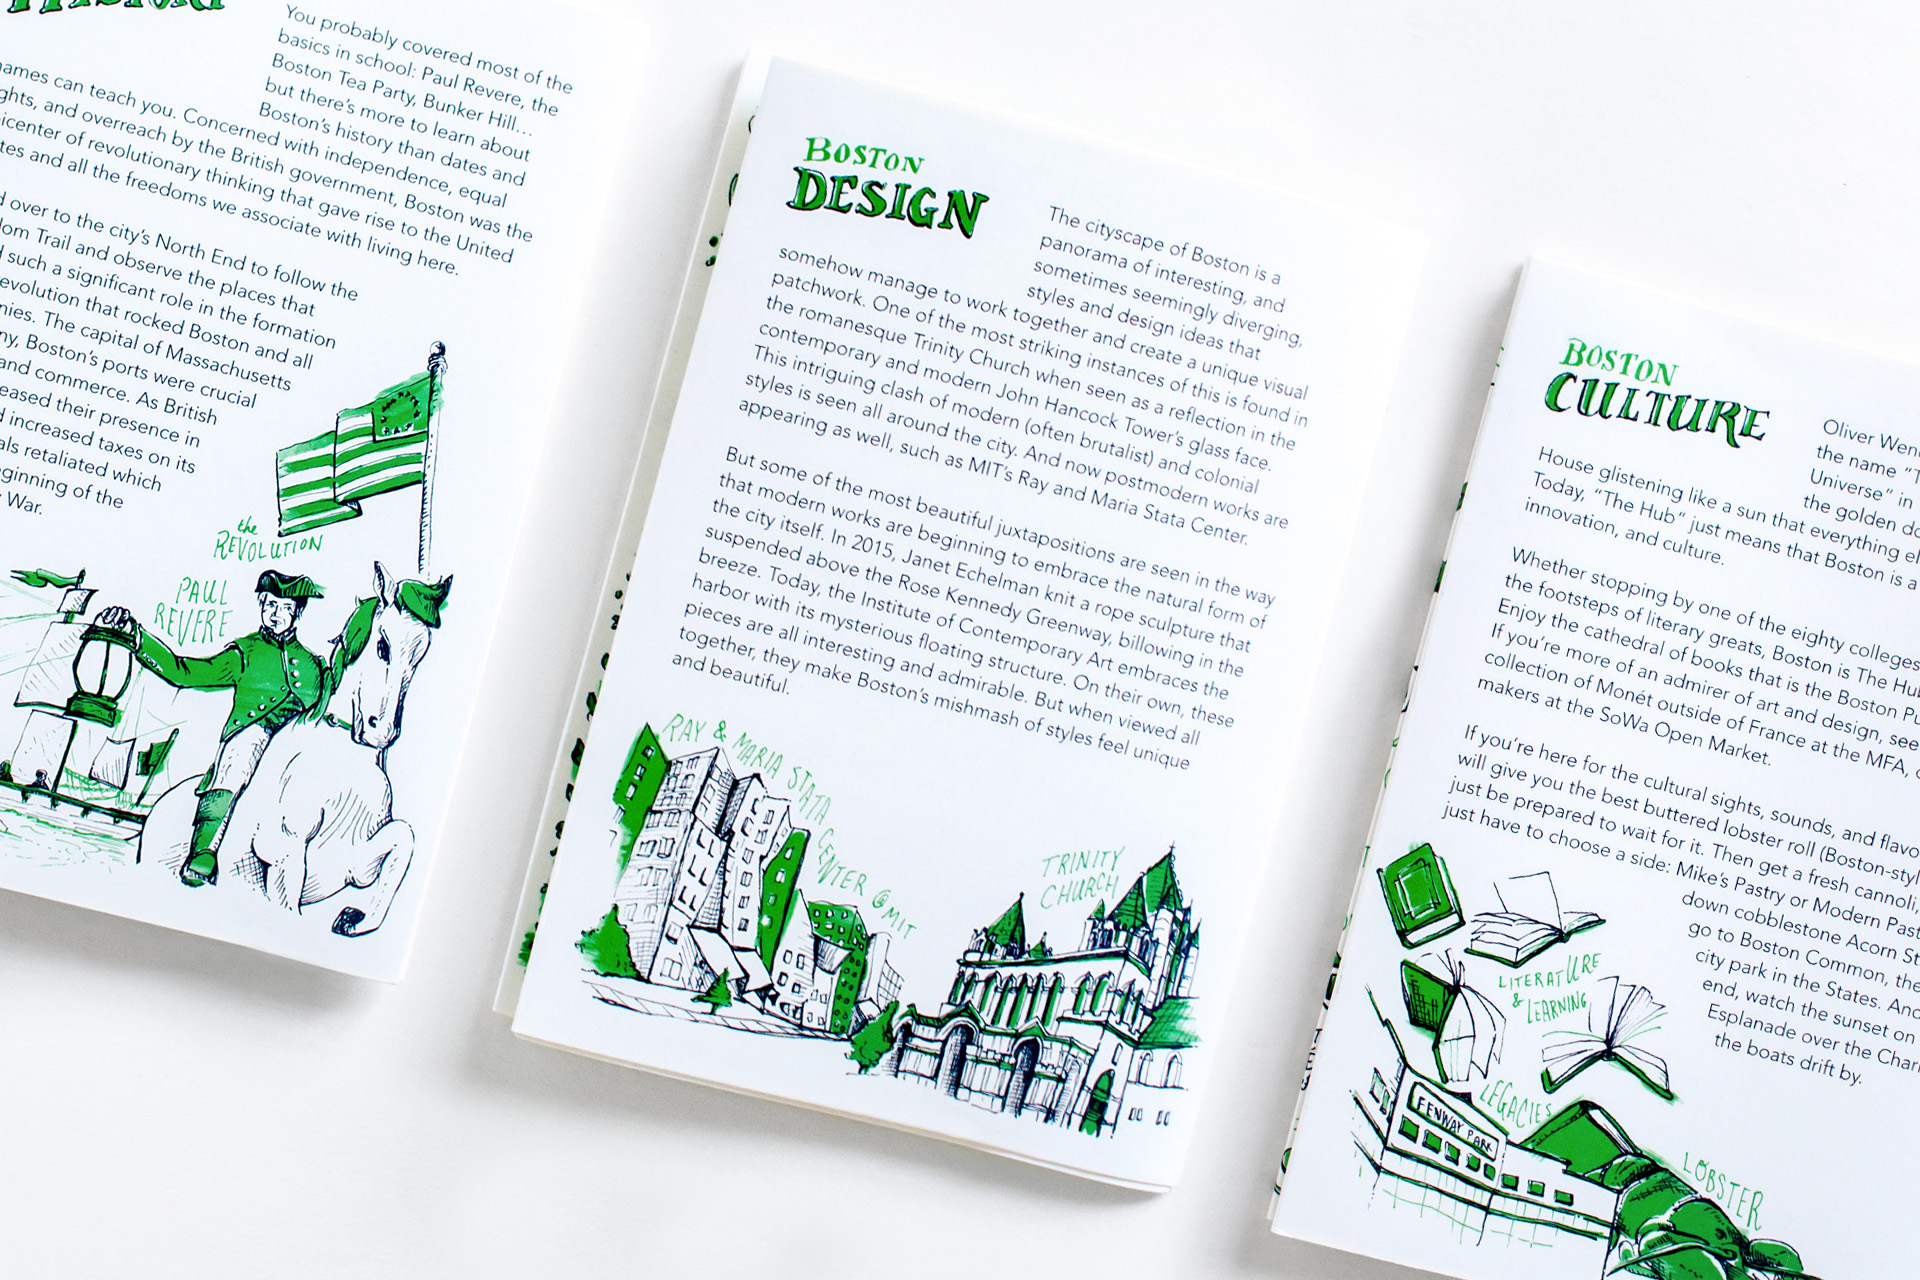 Hand drawn details of the Boston History, Boston Design and Boston Culture fun facts about the city for the Neenah Paper Presents Boston maps and guides at the HOW Design Live Conference in 2018.